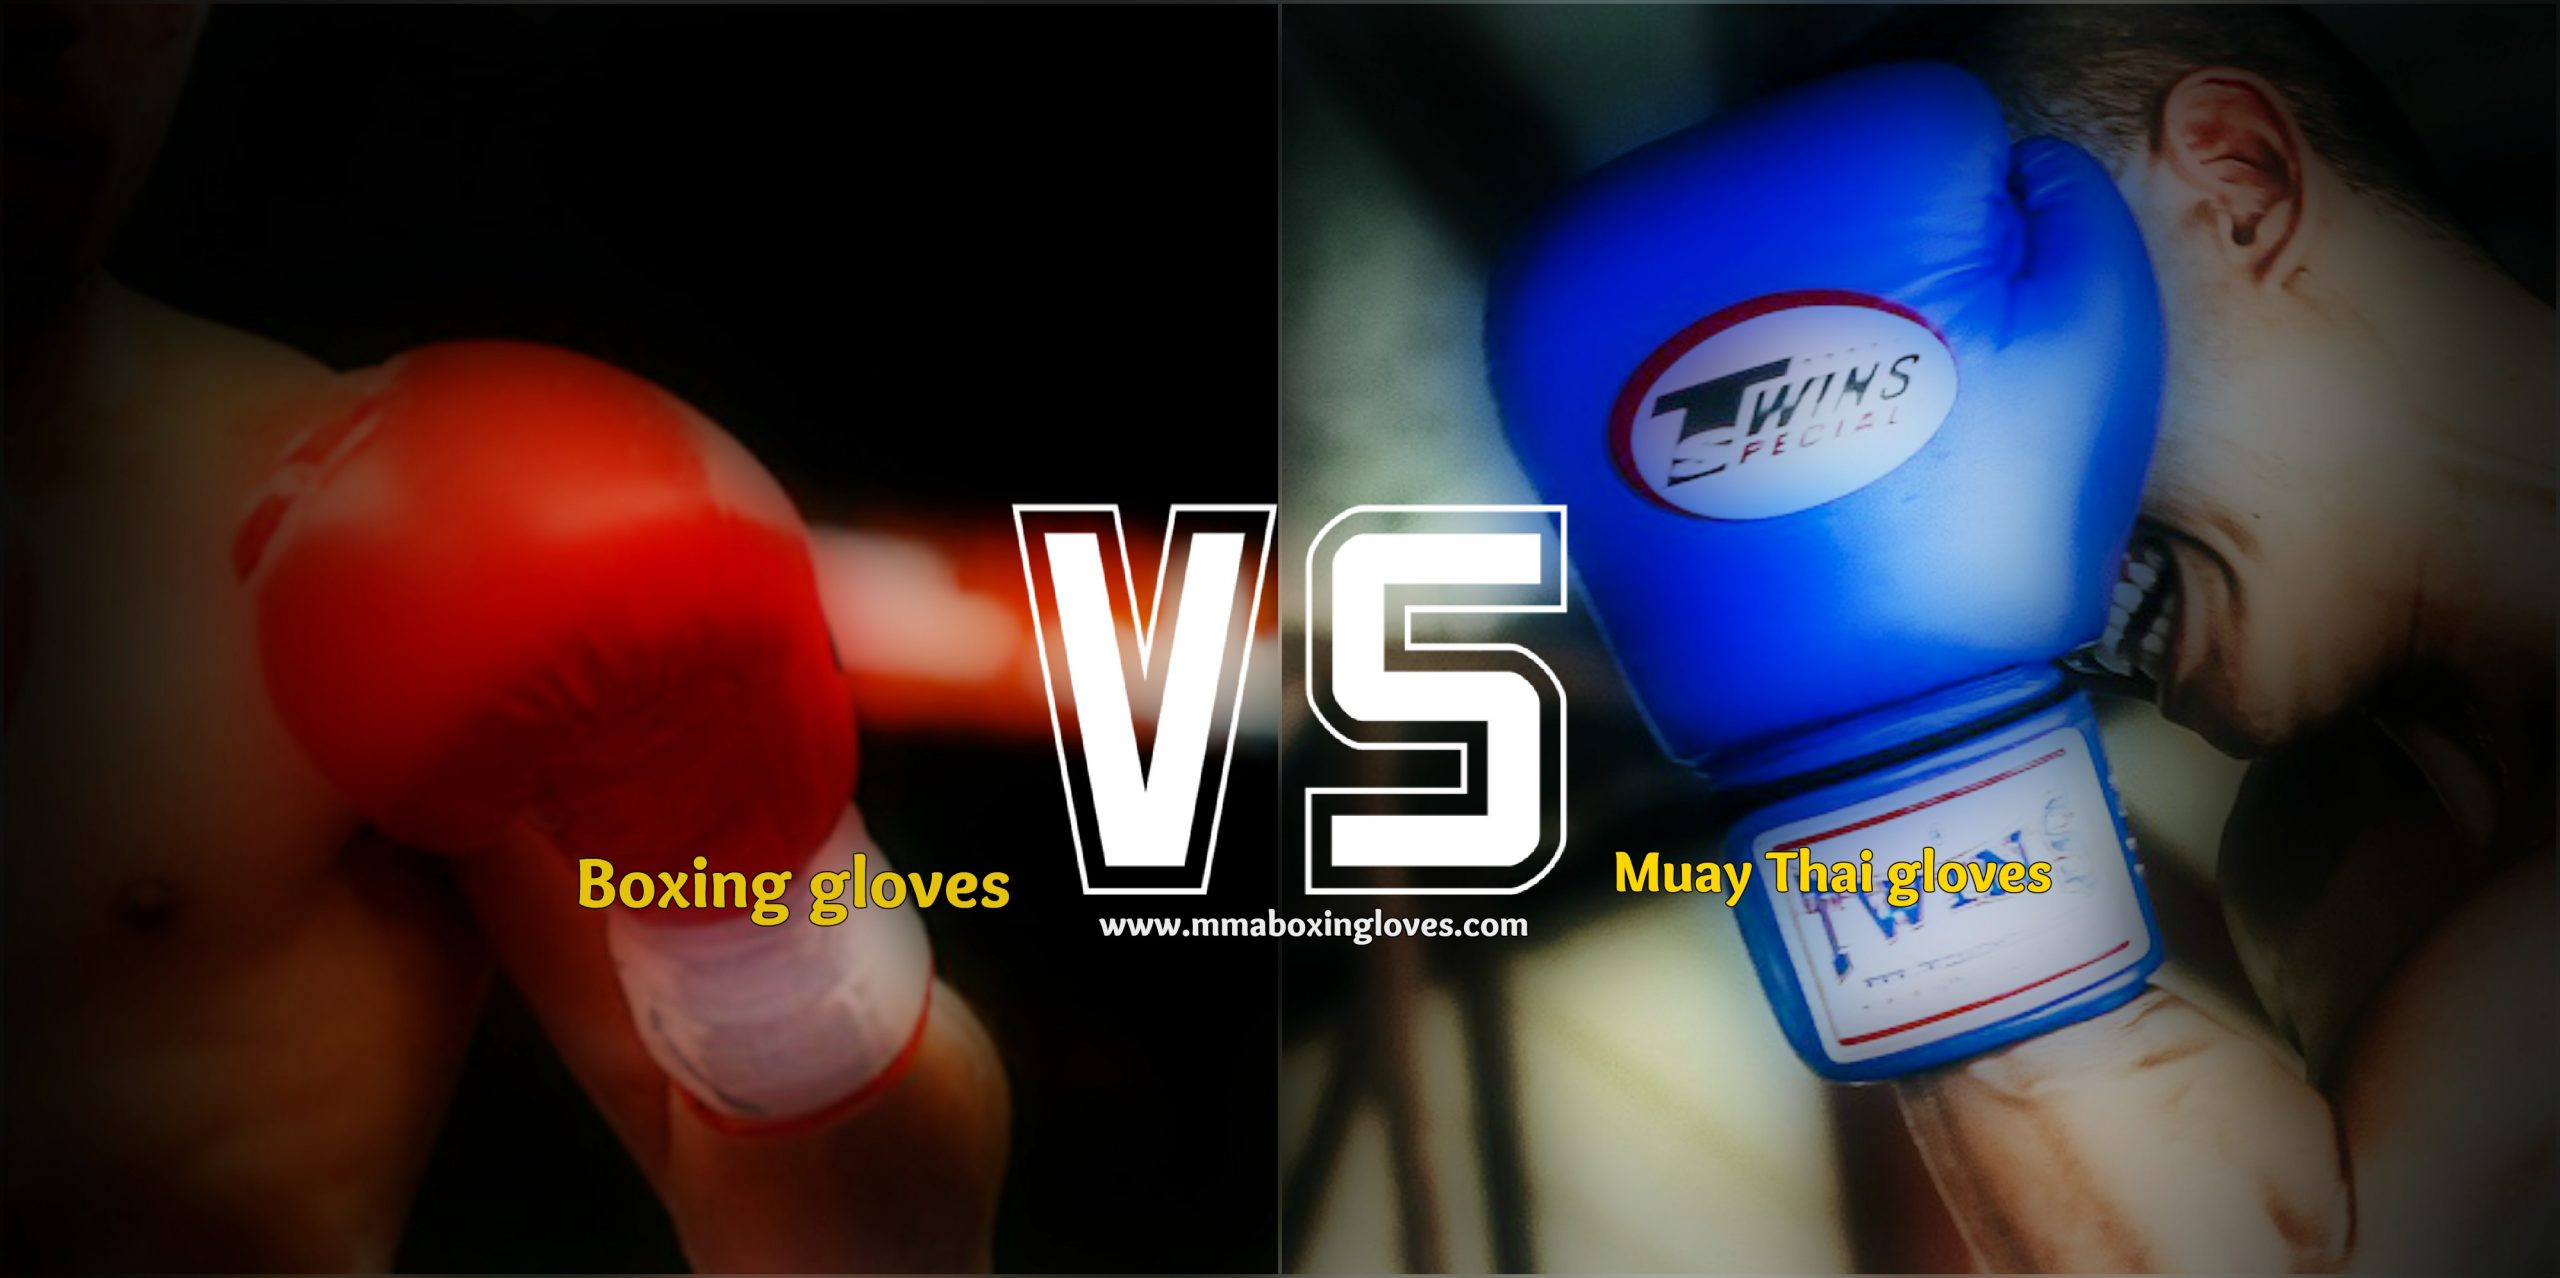 Muay Thai gloves VS. Boxing gloves